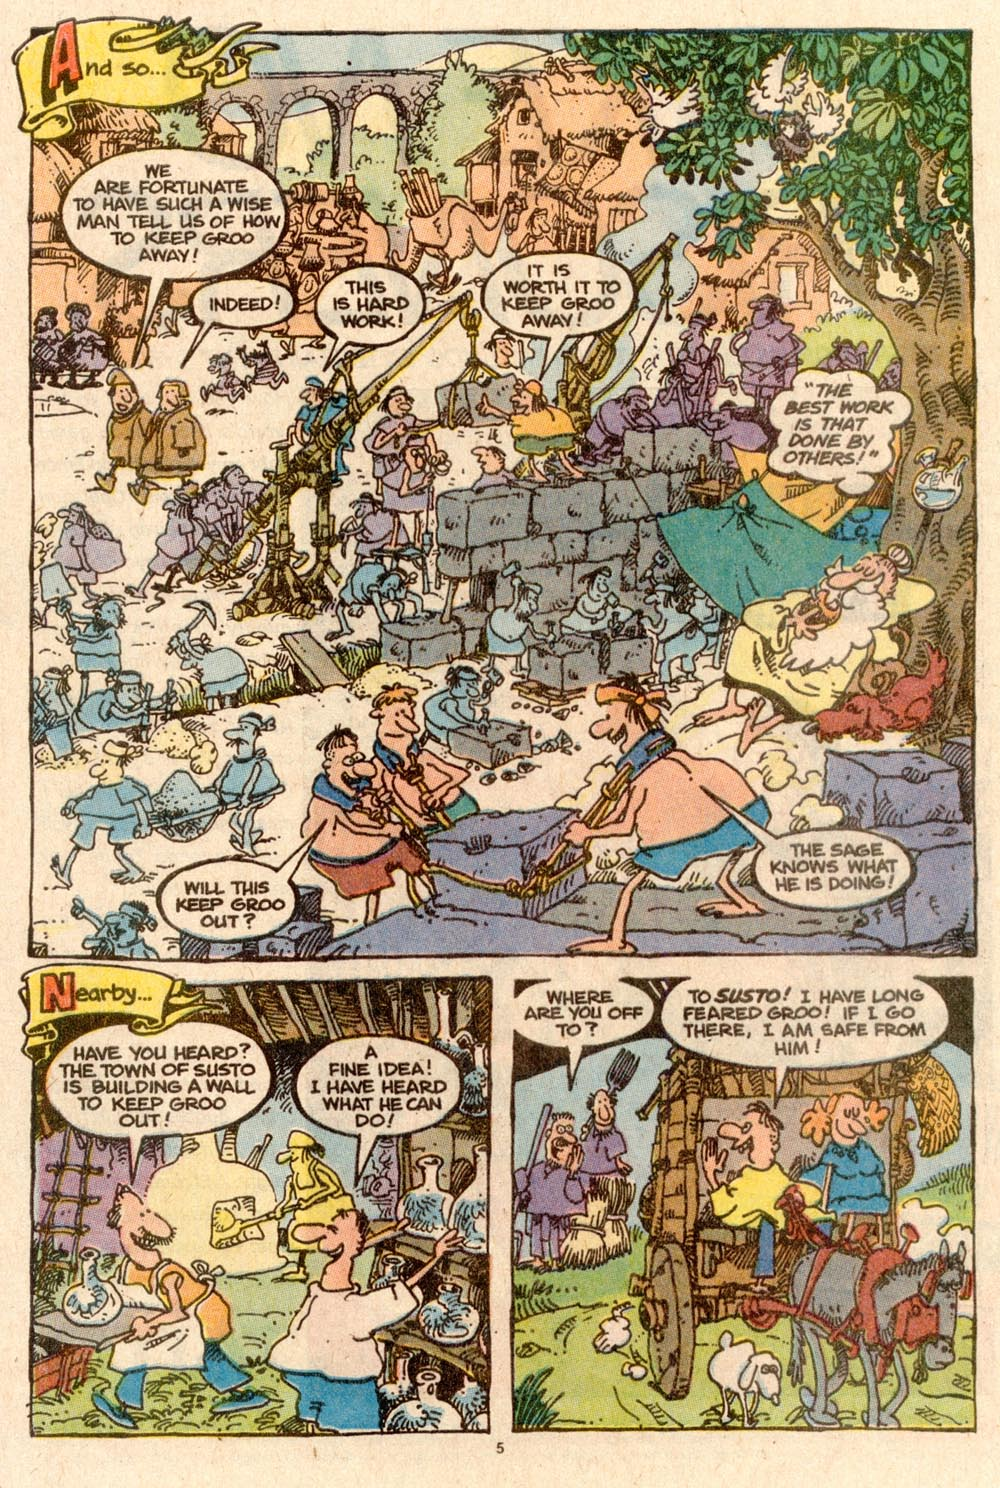 Read online Sergio Aragonés Groo the Wanderer comic -  Issue #59 - 5